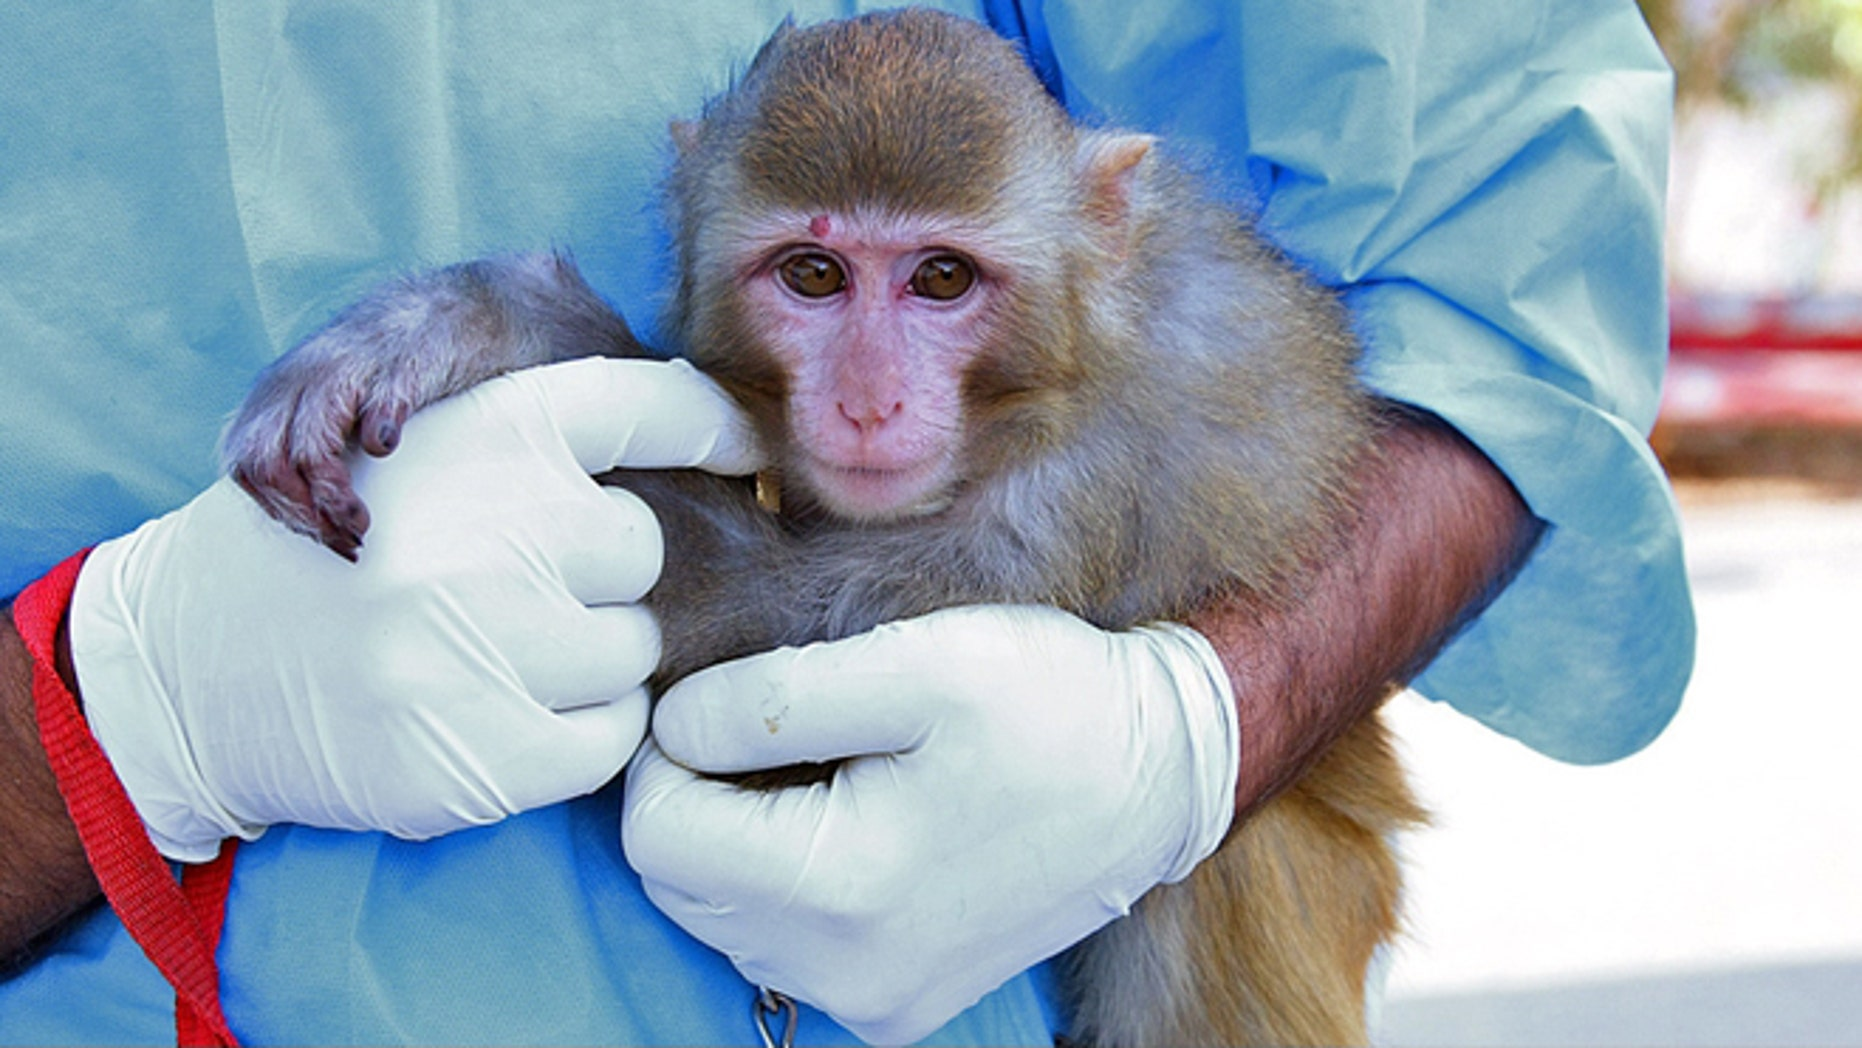 Jan. 28, 2012: Iran said it has successfully sent a monkey into space, describing the launch as another step toward Tehran's goal of a manned space flight.